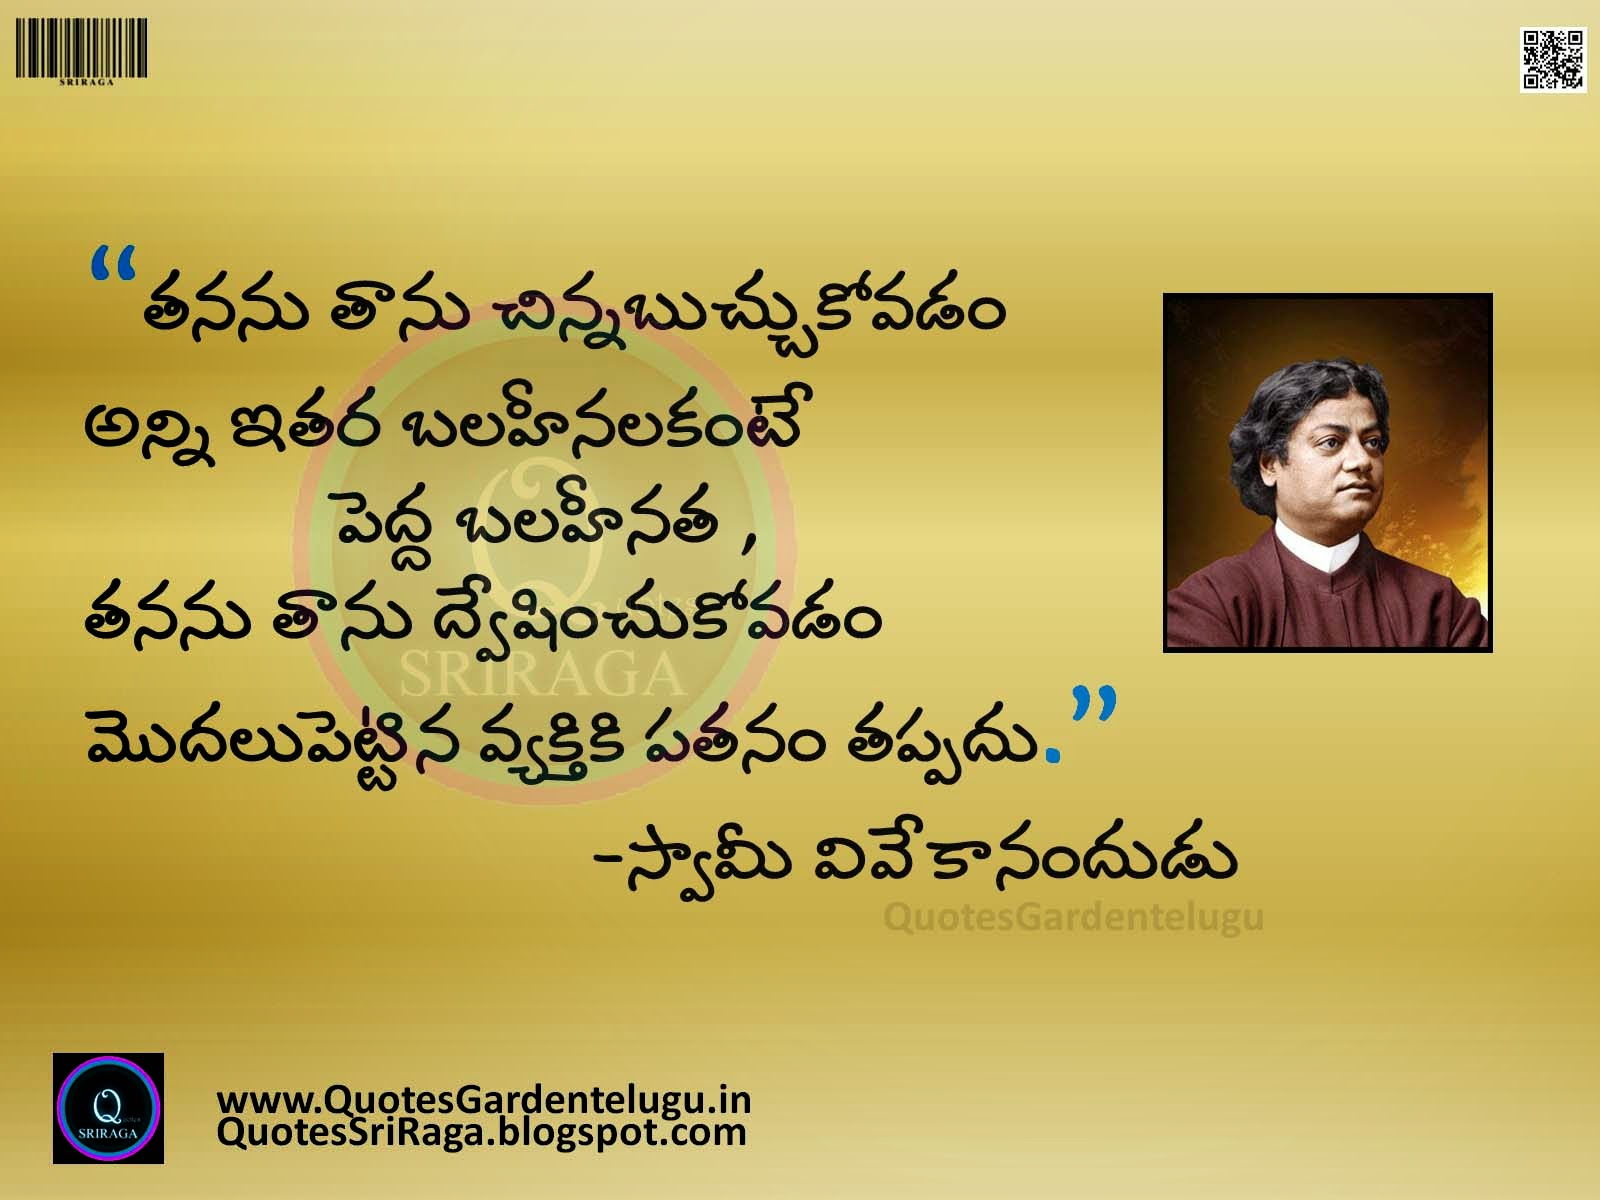 Vivekananda telugu quotes - Vivekananda Best Inpsirational quotes - Best Telugu Vivekananda Good Reads Quotes Inspirational Quotes with HD wallpapers images